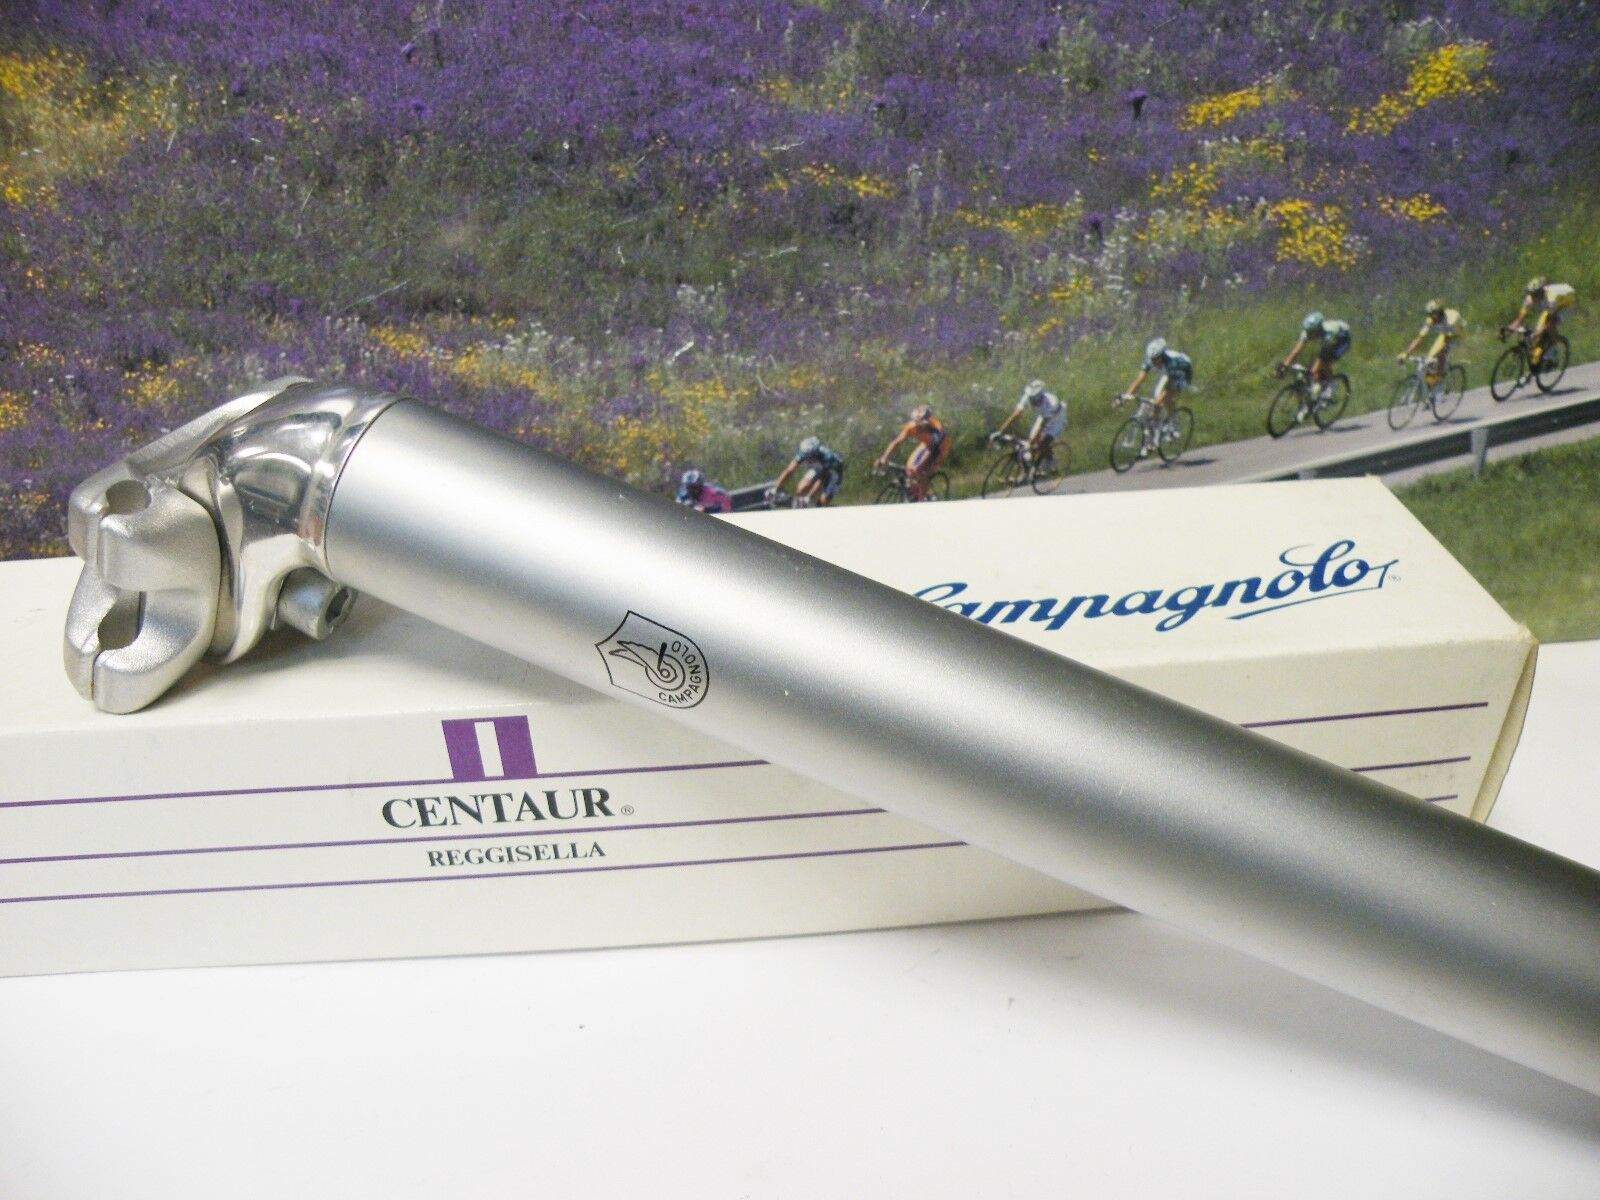 Campagnolo Centaur Sattelstütze seatpin seatpost 30mm MTB 280mm lenght,NOS